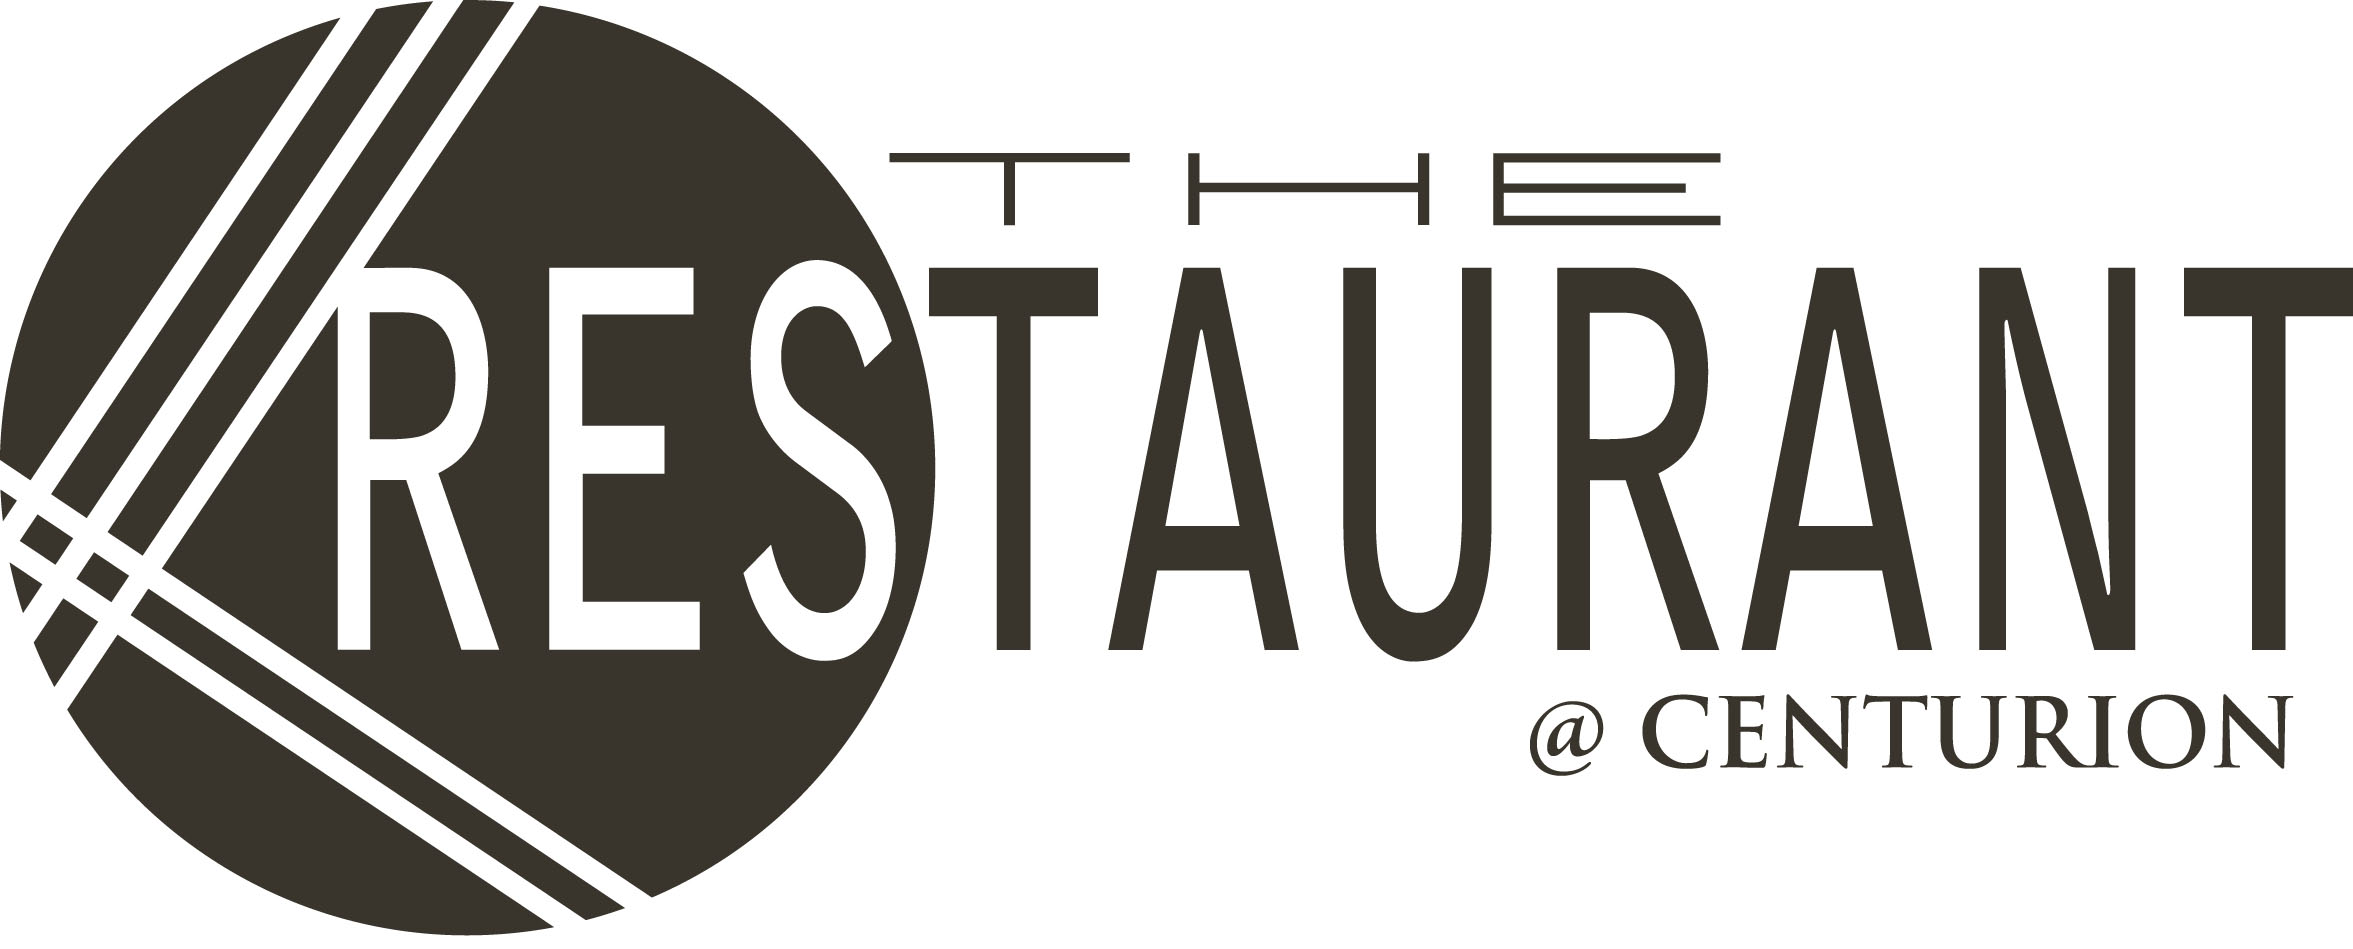 The Restaurant @ Centurion Logo